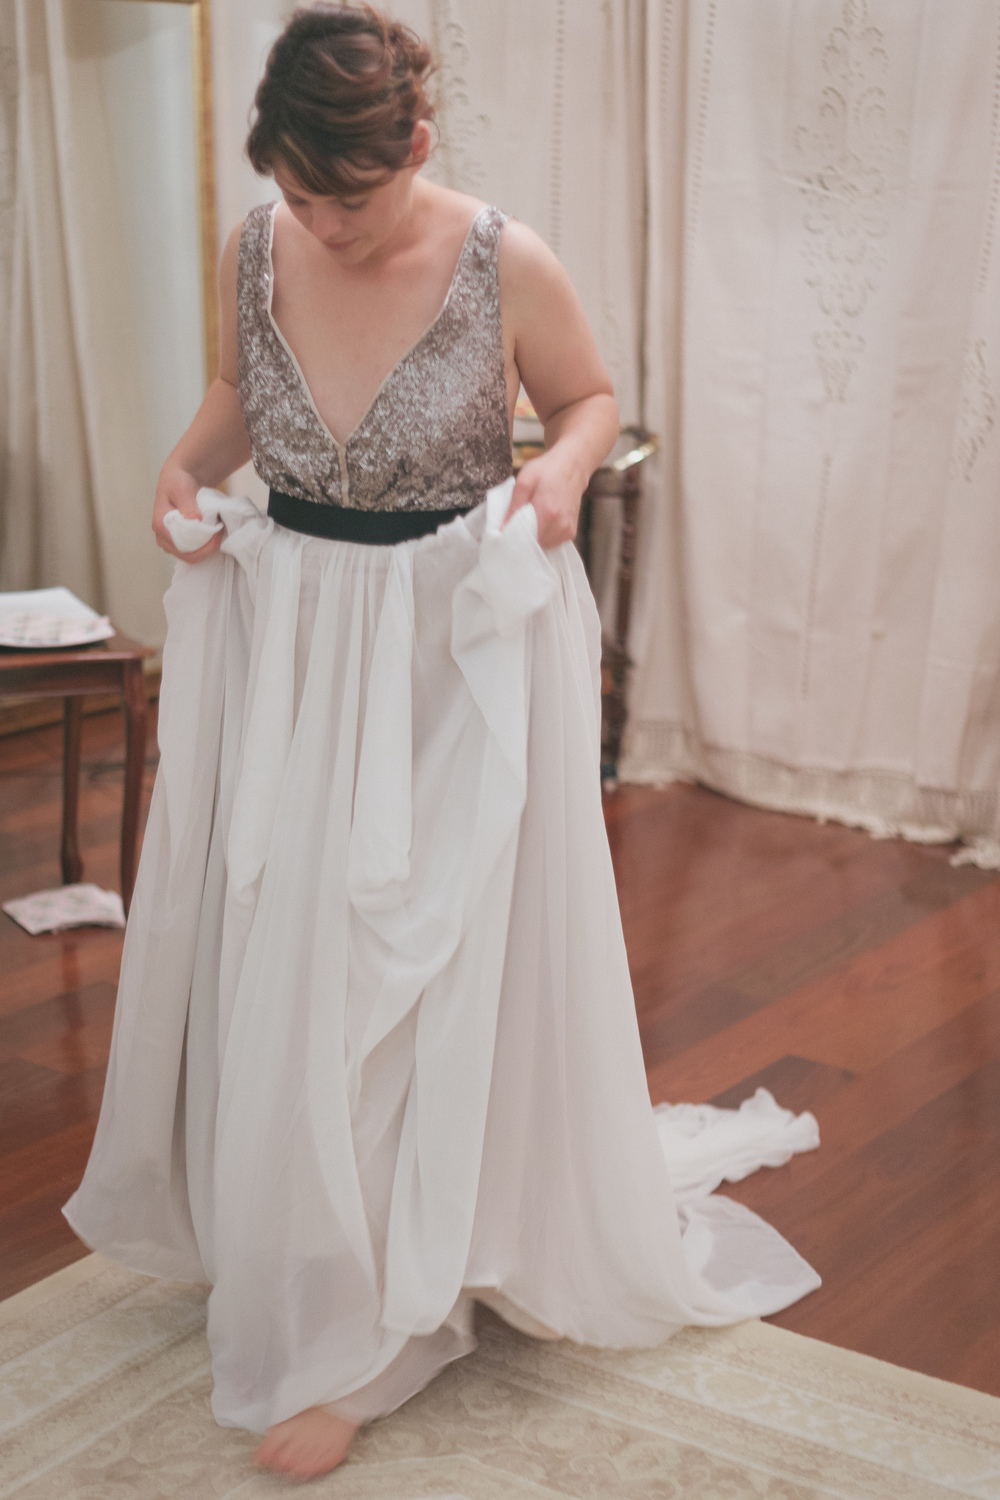 My friend Bec in the silver Julia. She really liked this one and I think she looks amazing in it. Believe it or not this was her first experience trying on gowns and she is actually getting married too! I loved being a part of it x